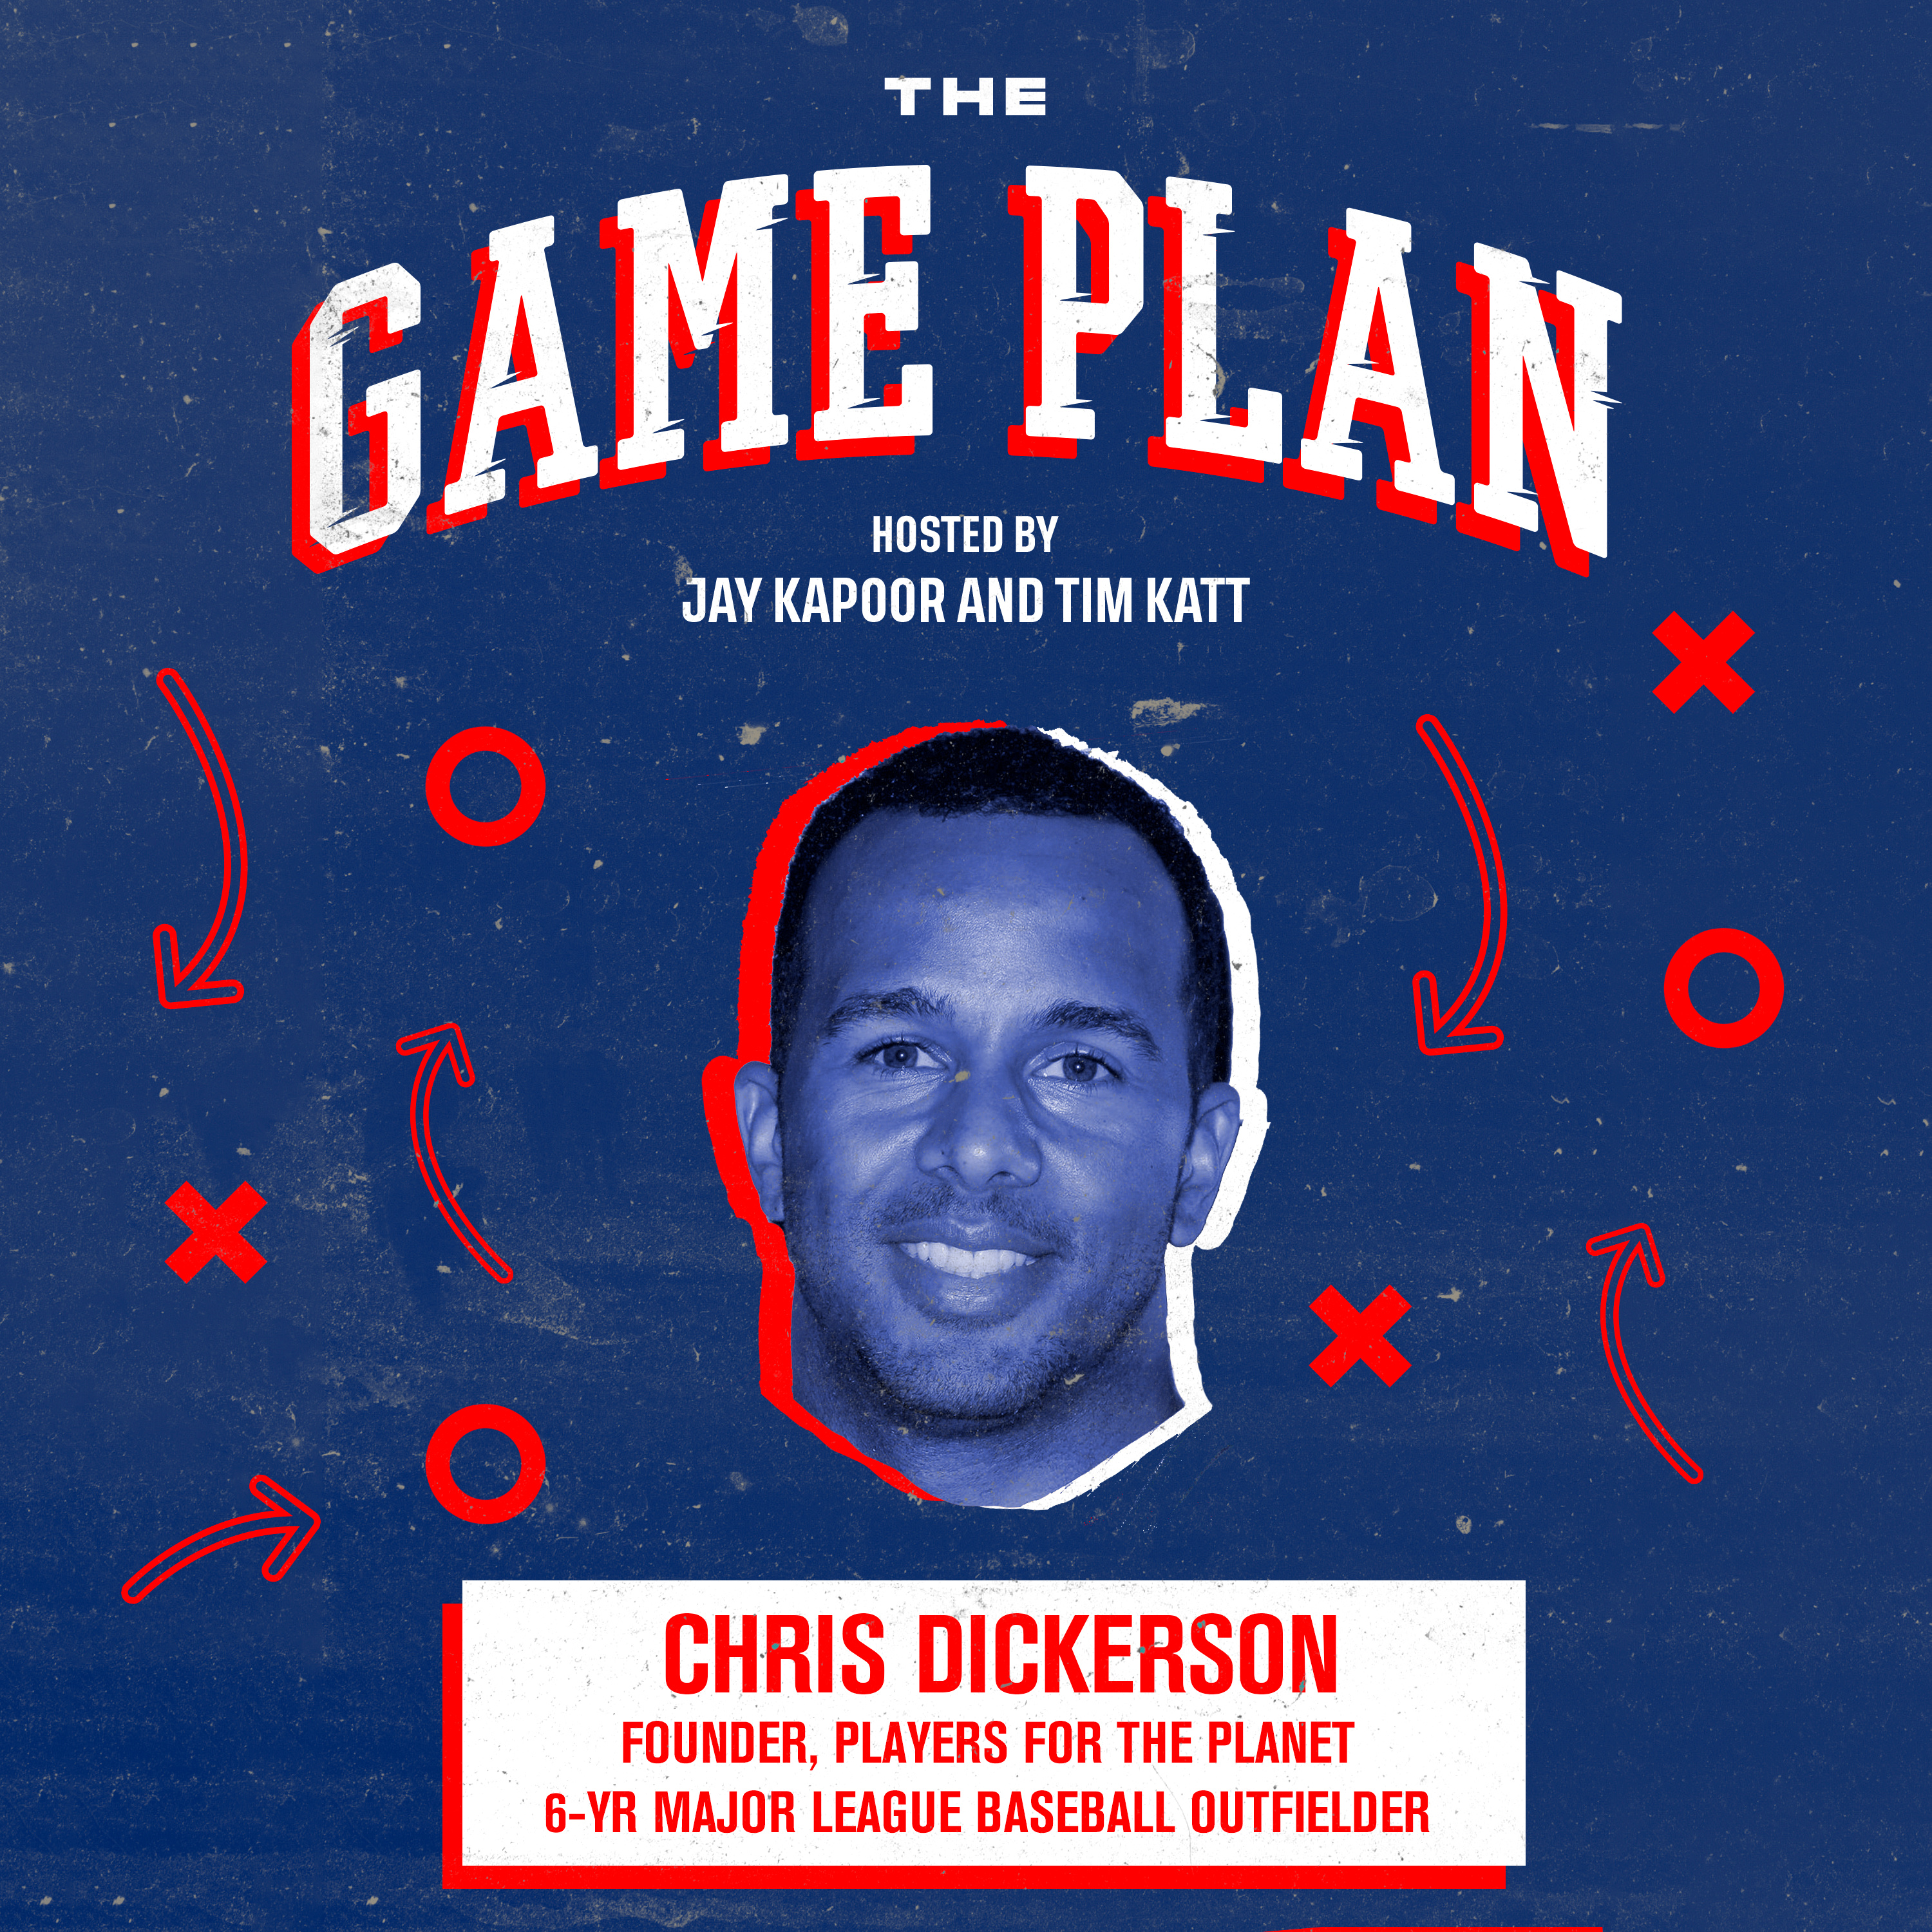 Chris Dickerson — Combating Climate Change and Inspiring Environmental Justice via Players for The Planet